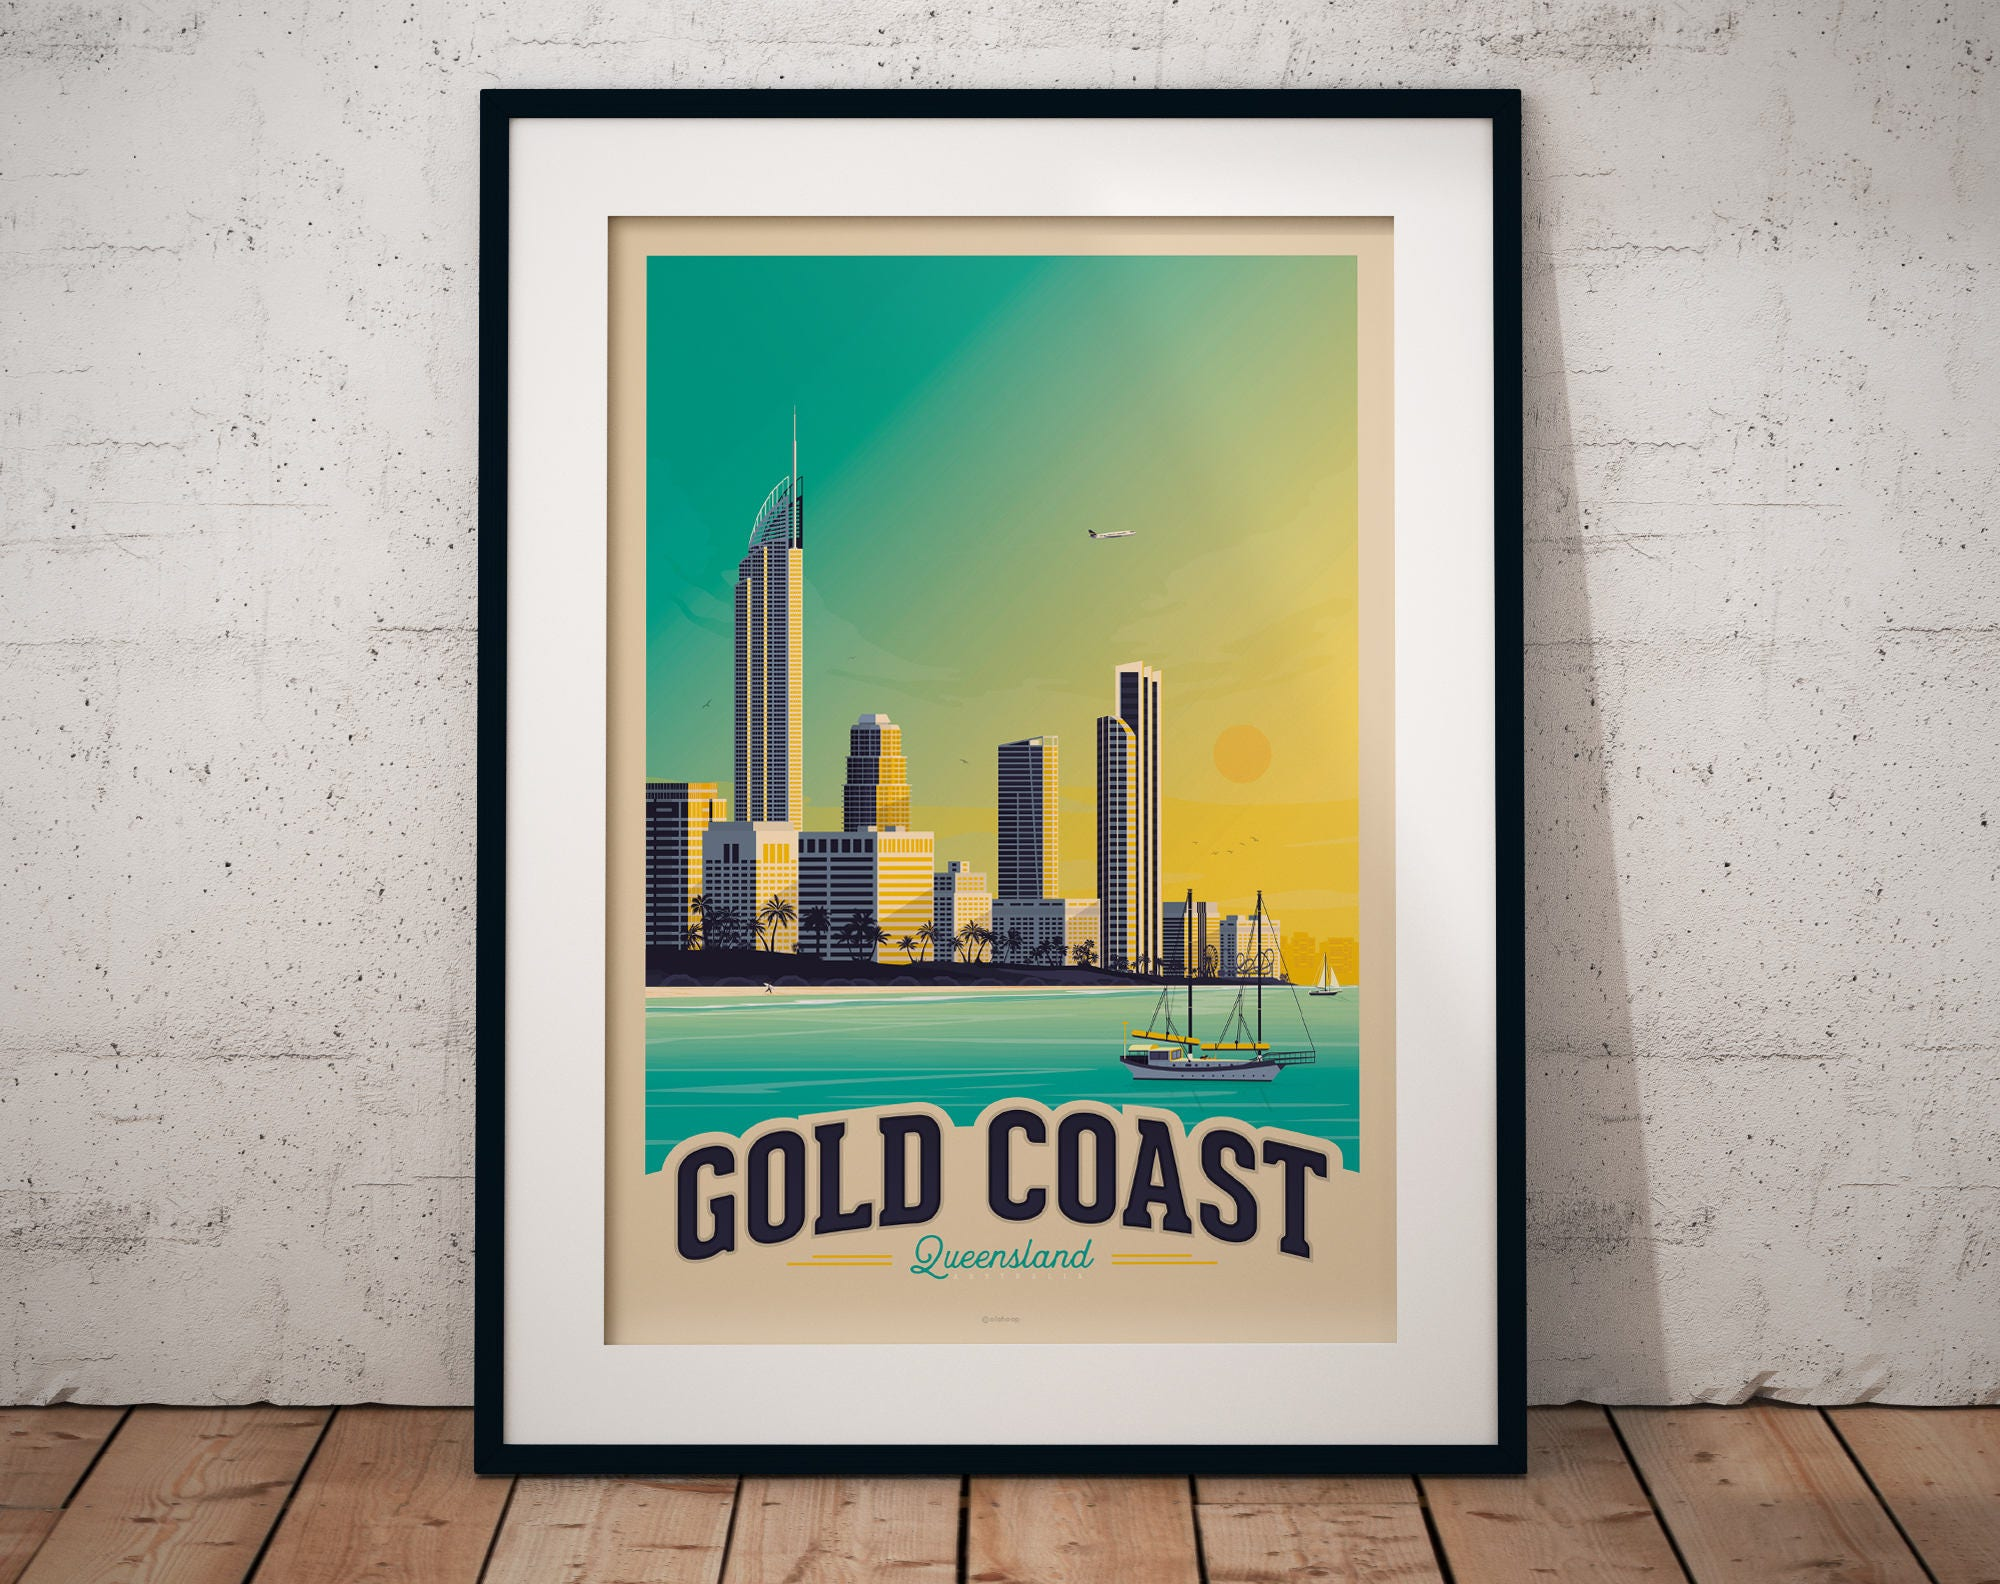 Gold coast australia print australia vintage travel poster art print wall art home decoration wall decoration gift idea beach skyline